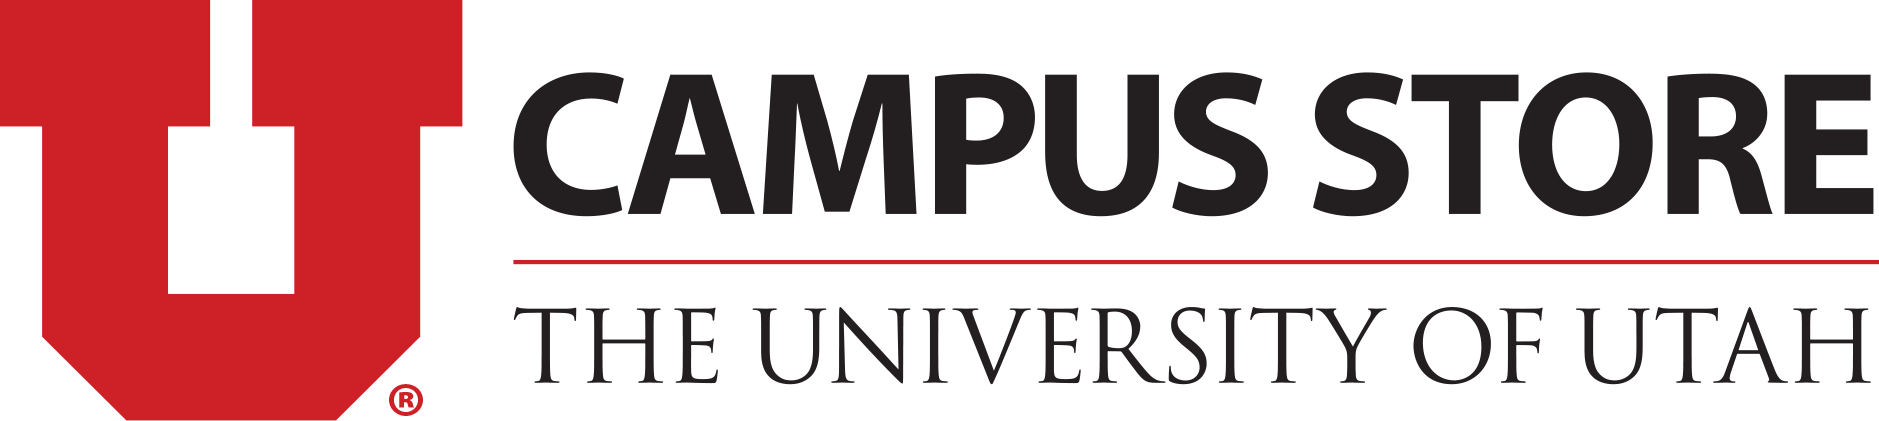 Logo for the University Campus Store